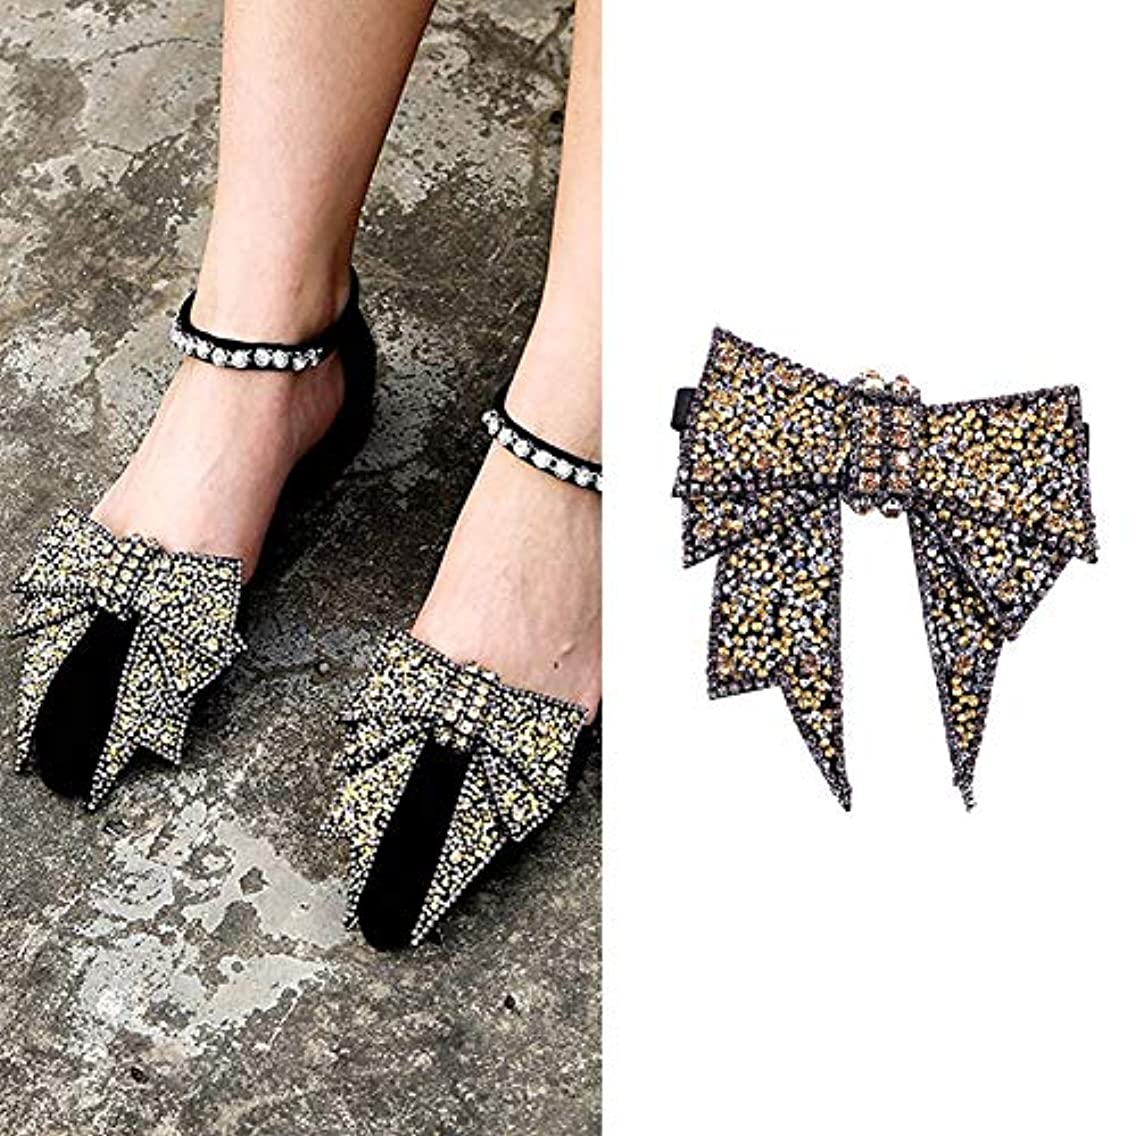 2PCS DIY Handmade Rhinestone Bow Butterfly Shoe Straps Band Shoe Flower Accessories Shoes Decoration Charms Flats High Heels/Pumps Holder Shoe Decor for Lady Women (Style B#)